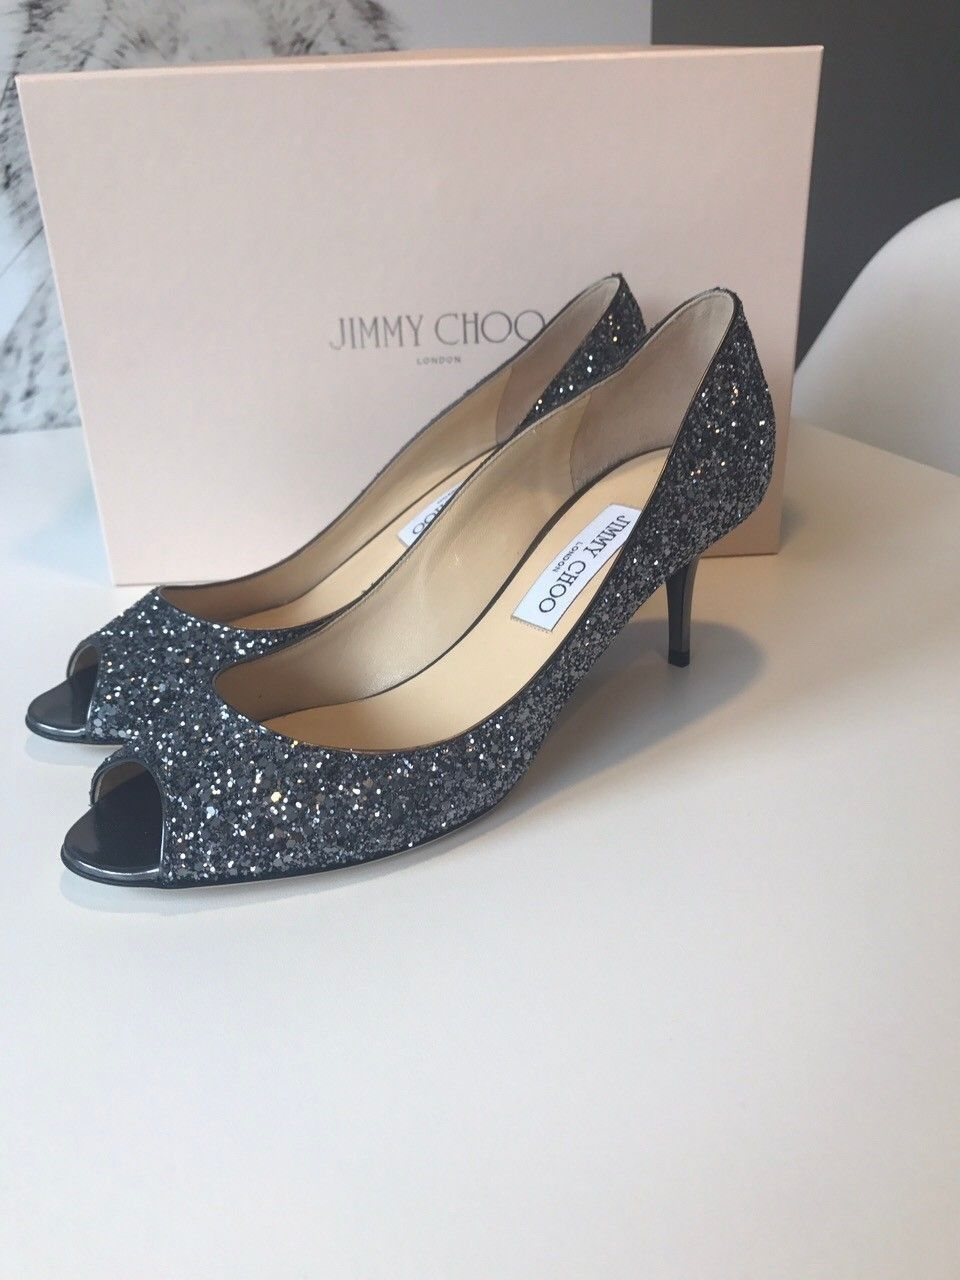 Jimmy choo sko | FINN.no